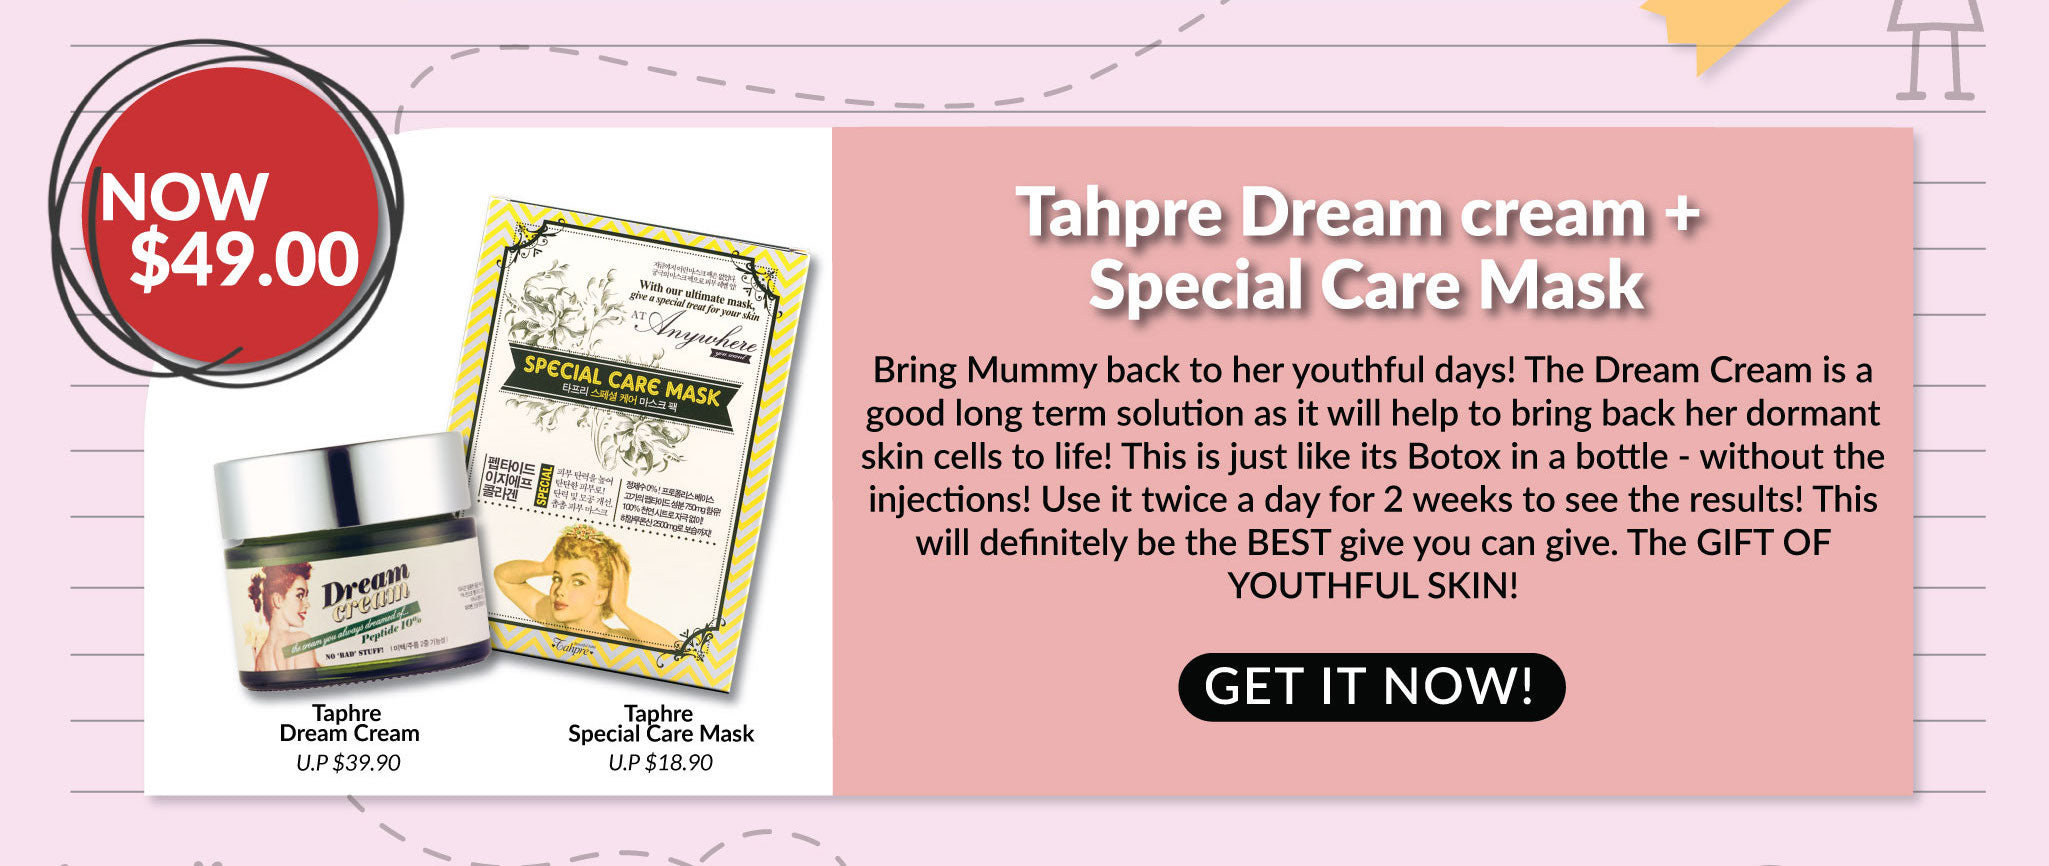 Tahpre Dream Cream + Special Care Mask Set